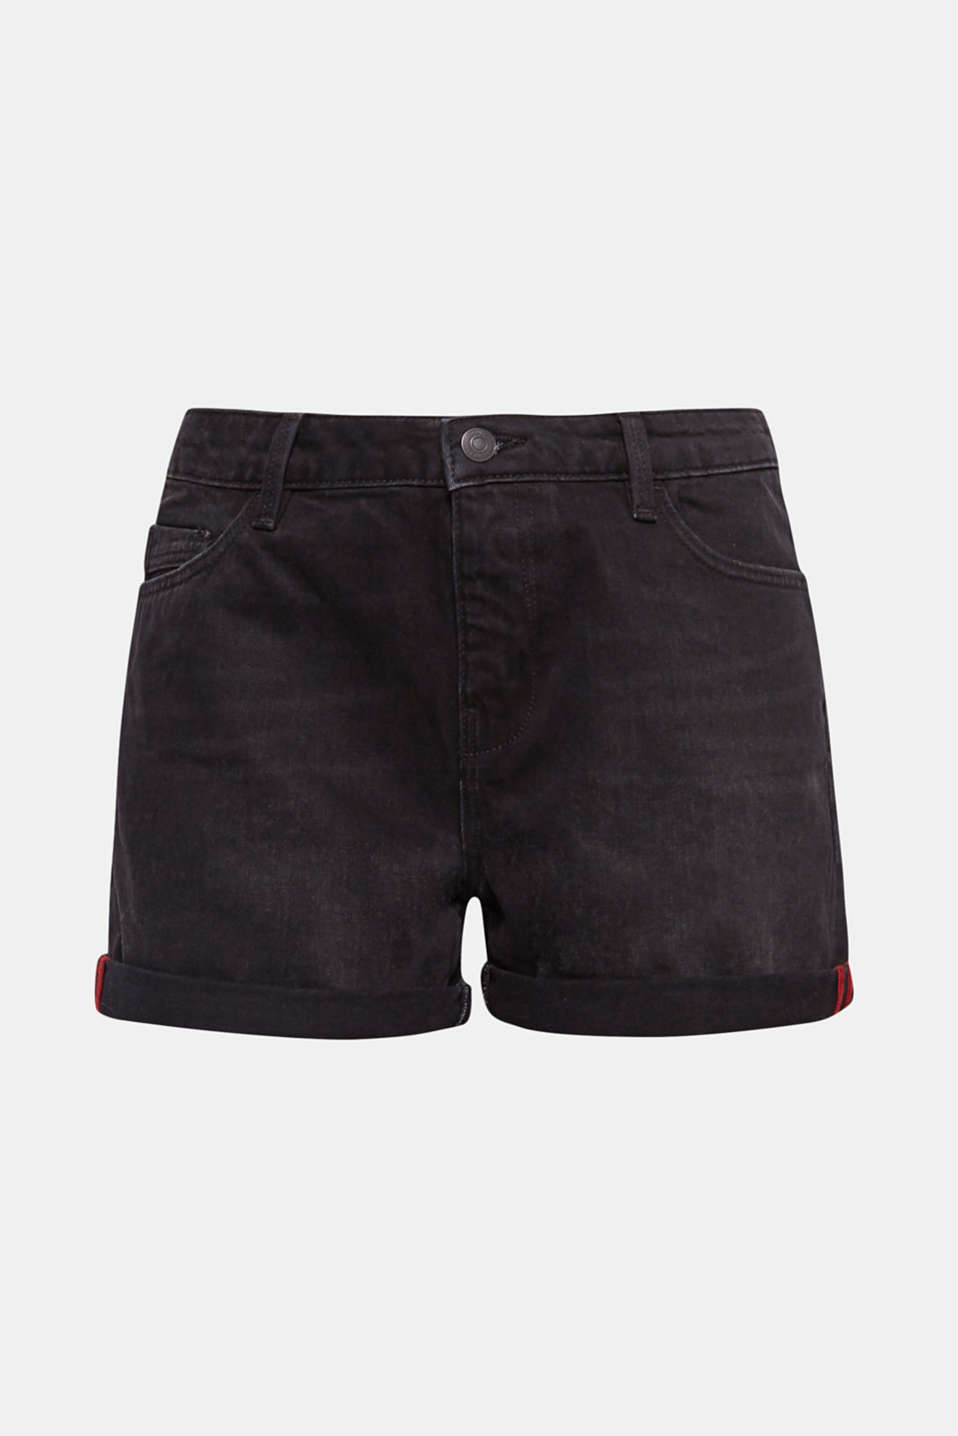 An indispensable summer basic: black cotton denim shorts with versatile, roll-up hems.